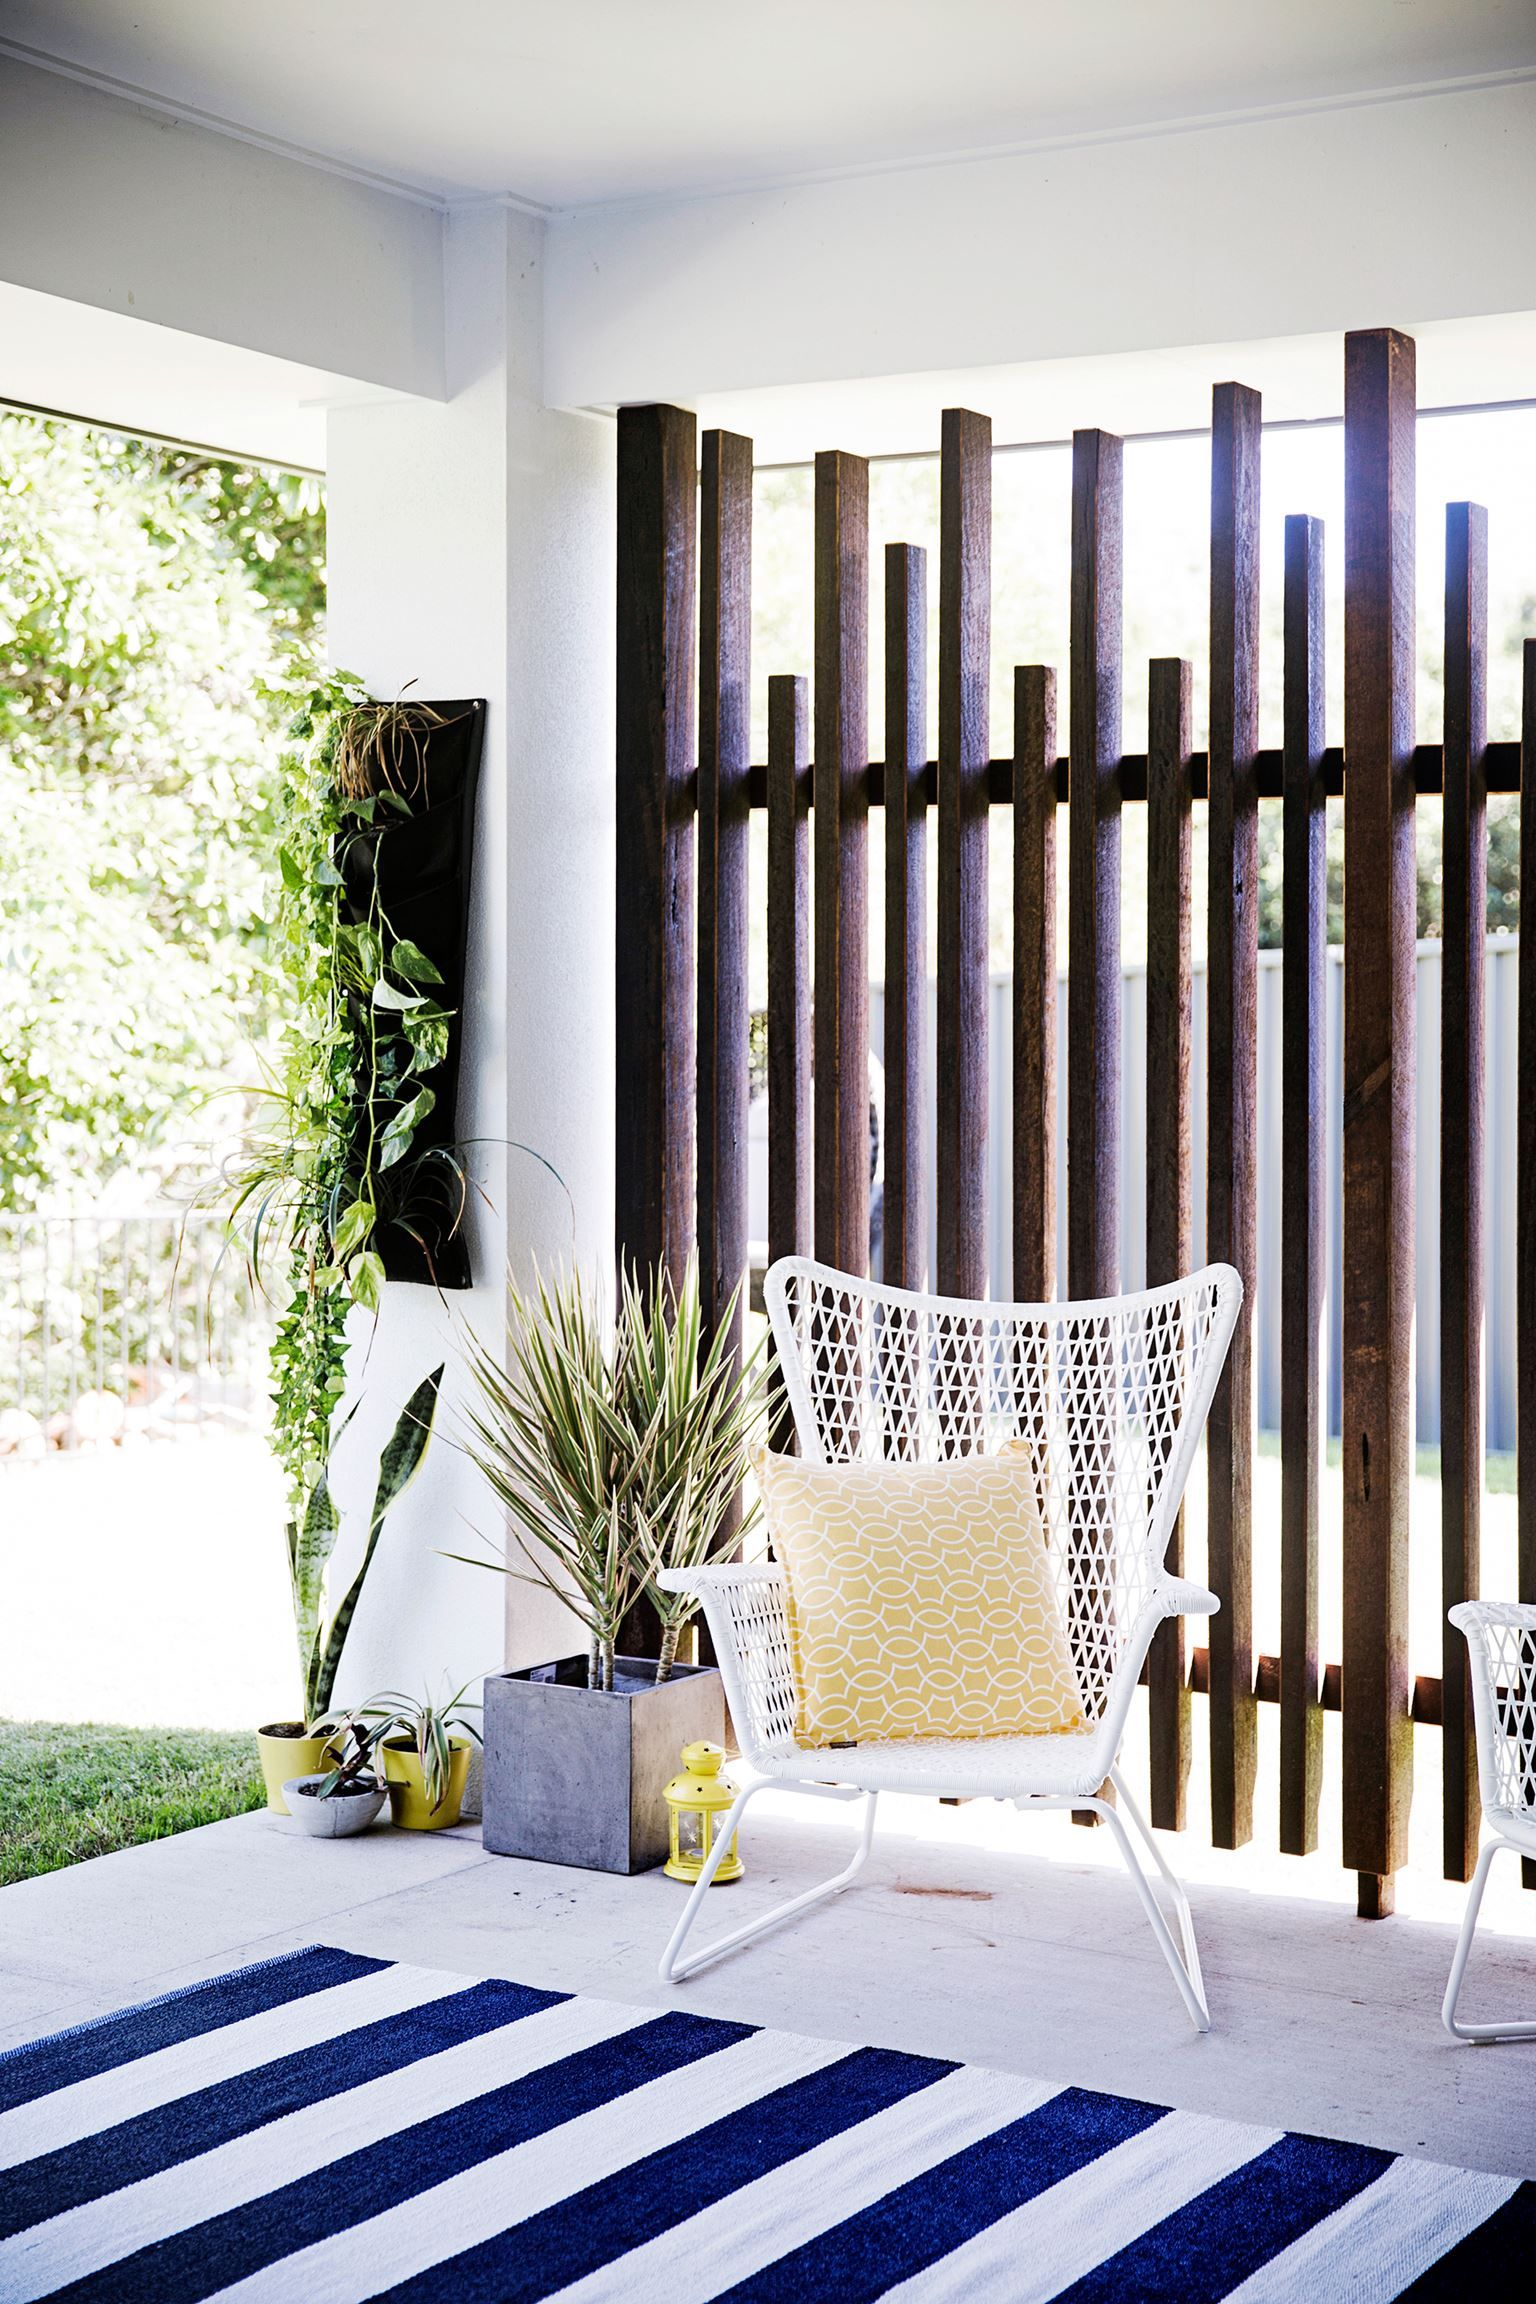 Timber wall to replace lattice ikea chair spotlight rug for Outdoor privacy screen designs